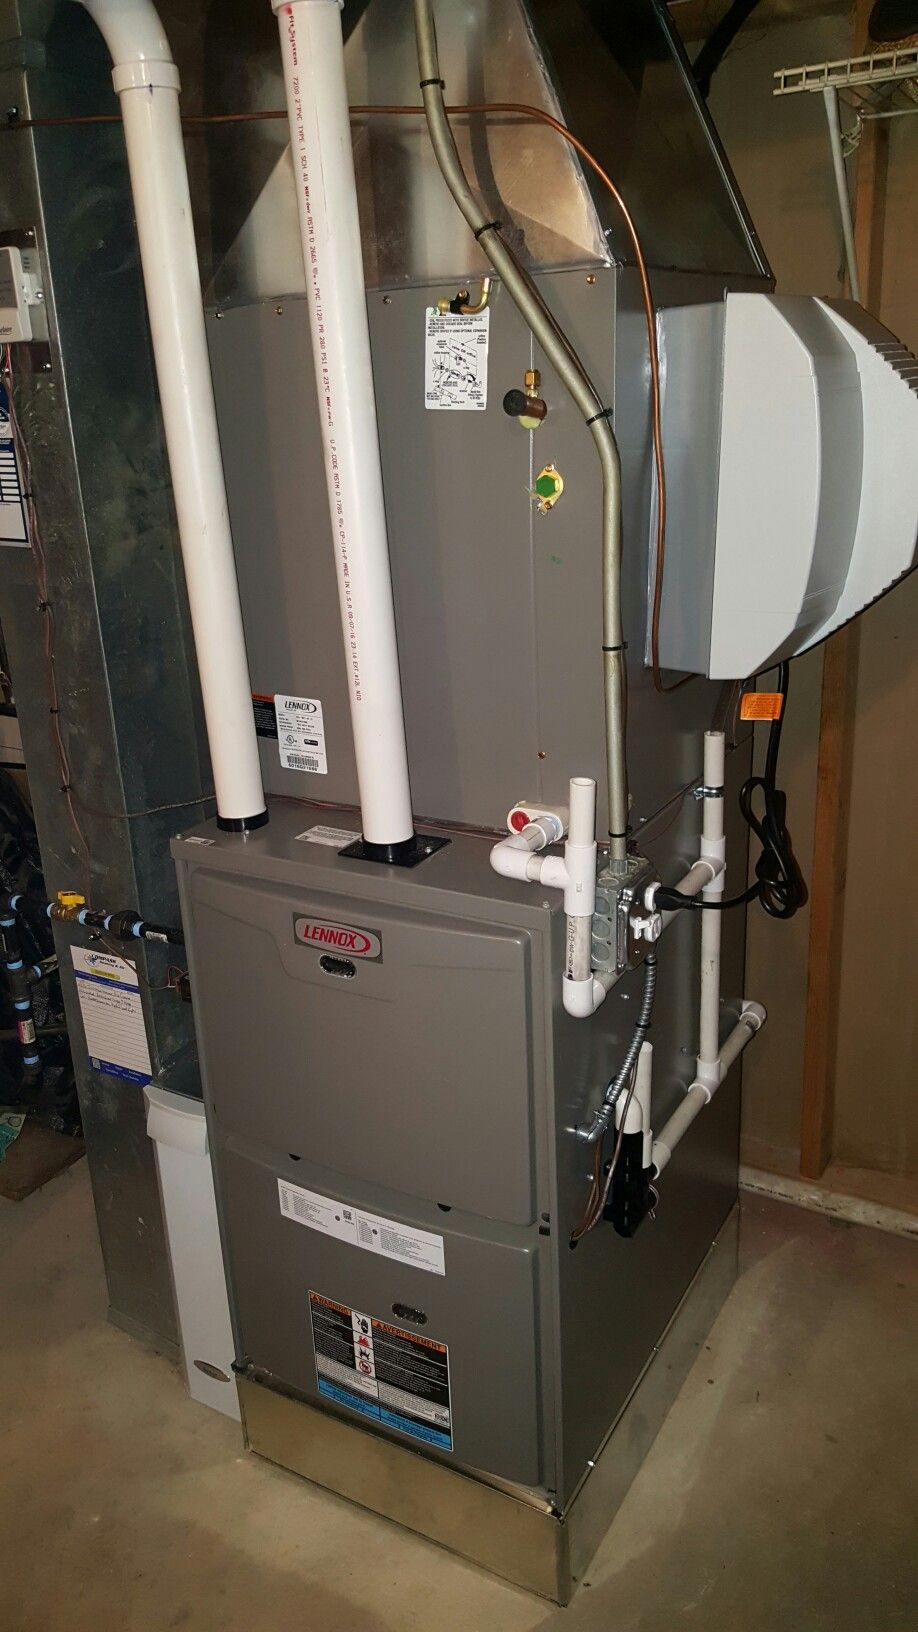 Lennox Ml193 High Efficiency Furnace Cased Evaporator